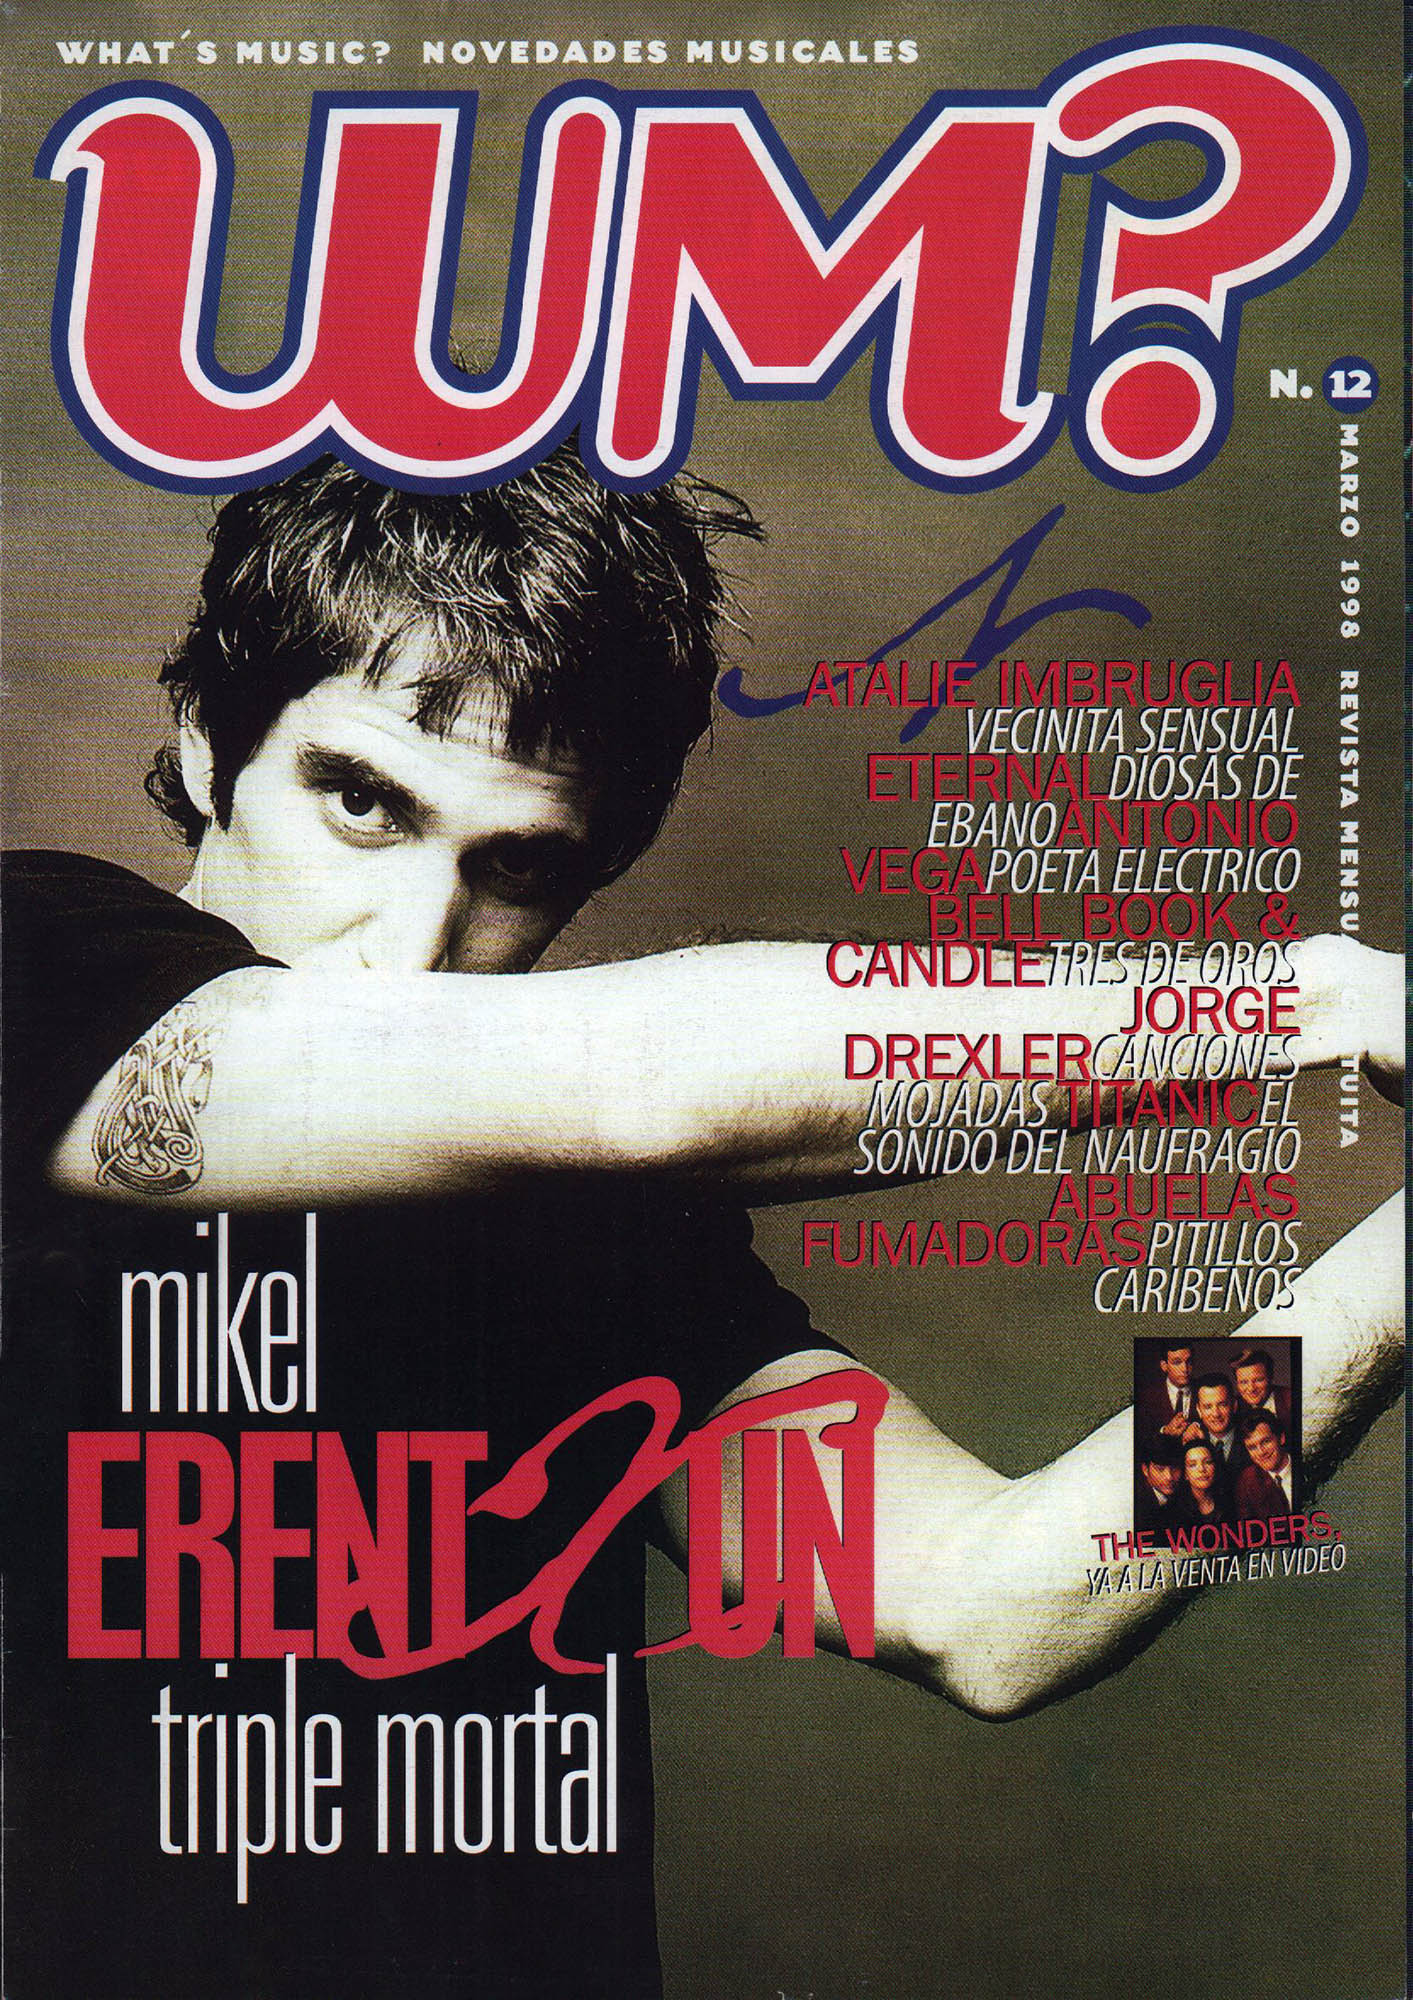 Mikel Erentxun, triple mortal | What's Music? | mar 1998